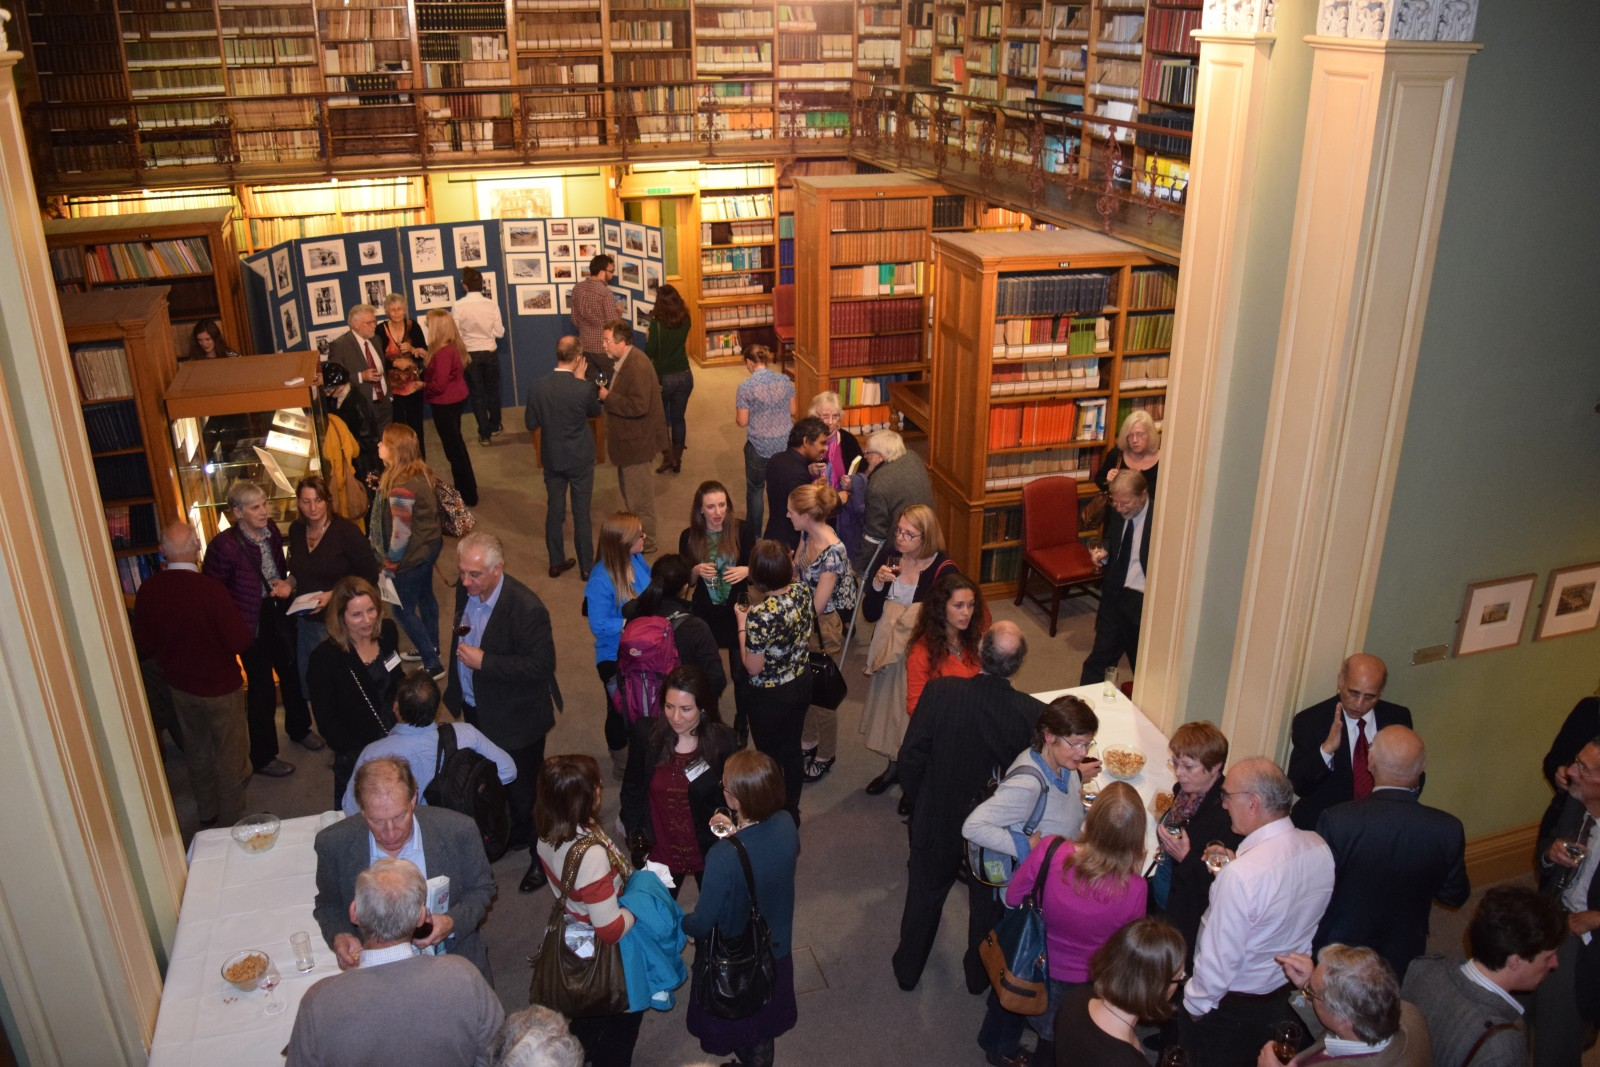 The Lost World of Ladakh - A special event organised with the Geological Society of London (October 2014).